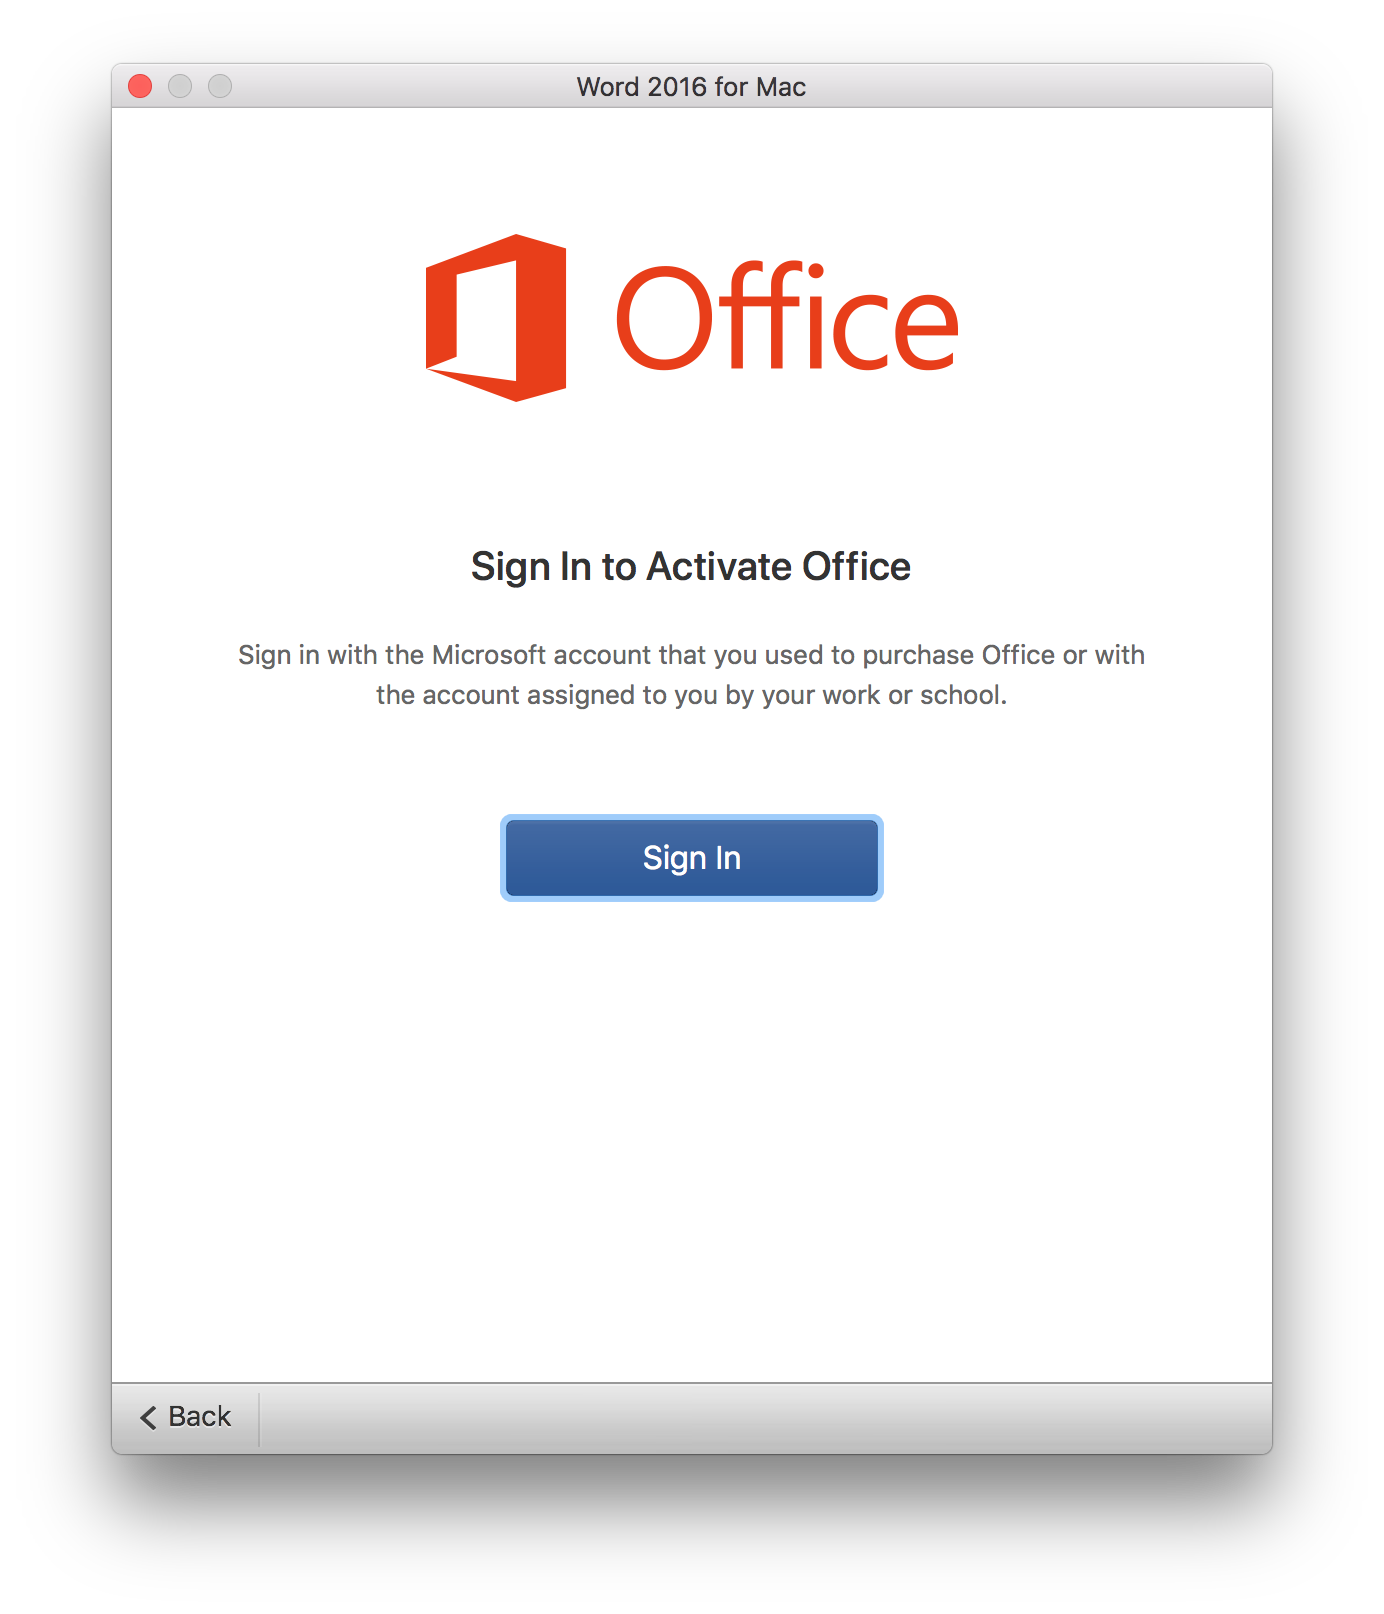 Office 2016 16 11 and MacOS 10 13 3 - Unable to Sign In to activate